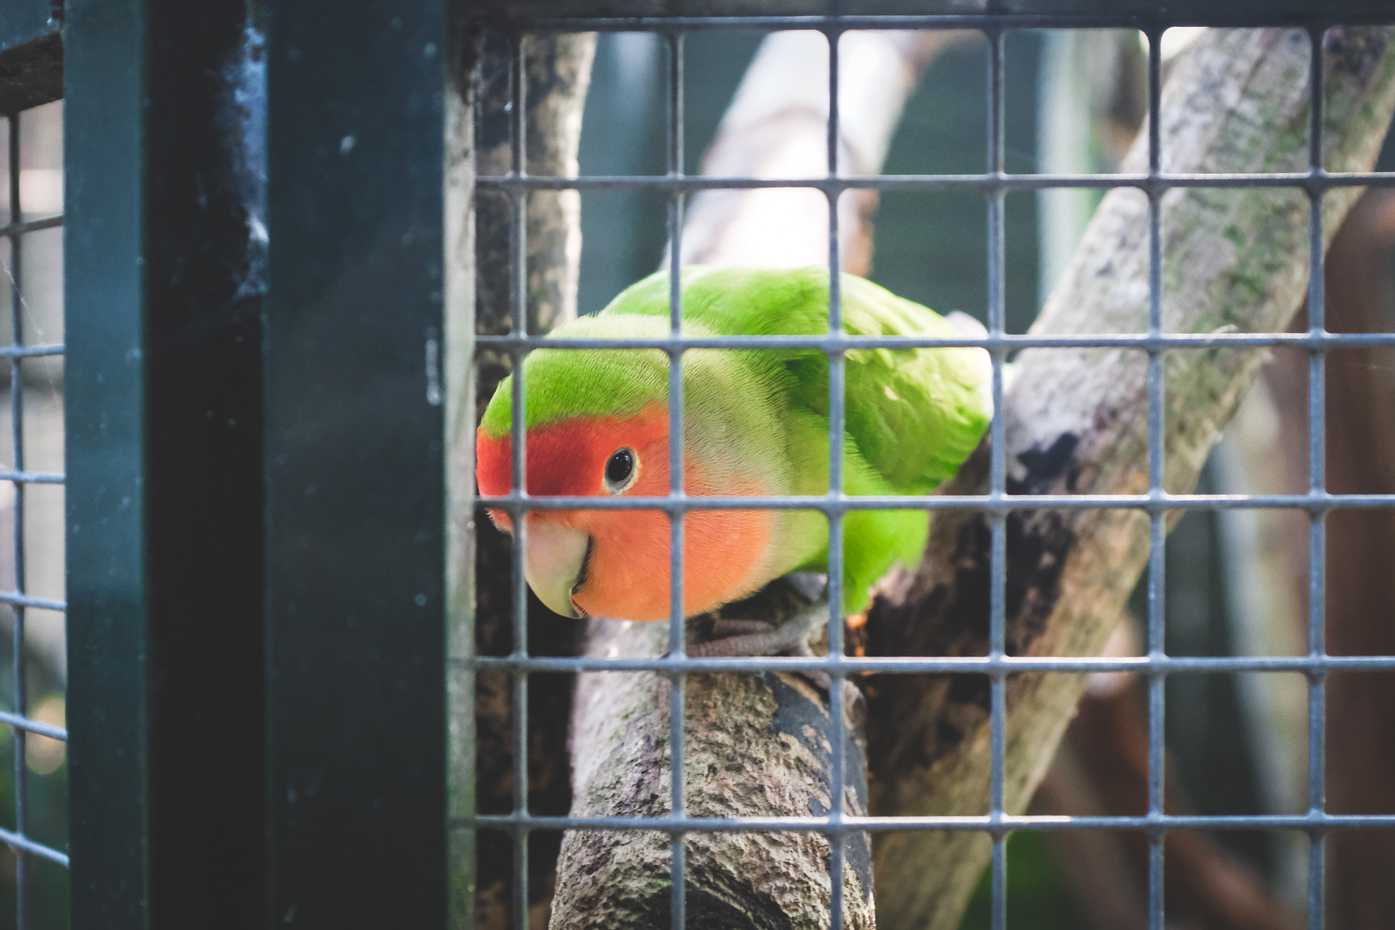 A small parrot in a cage